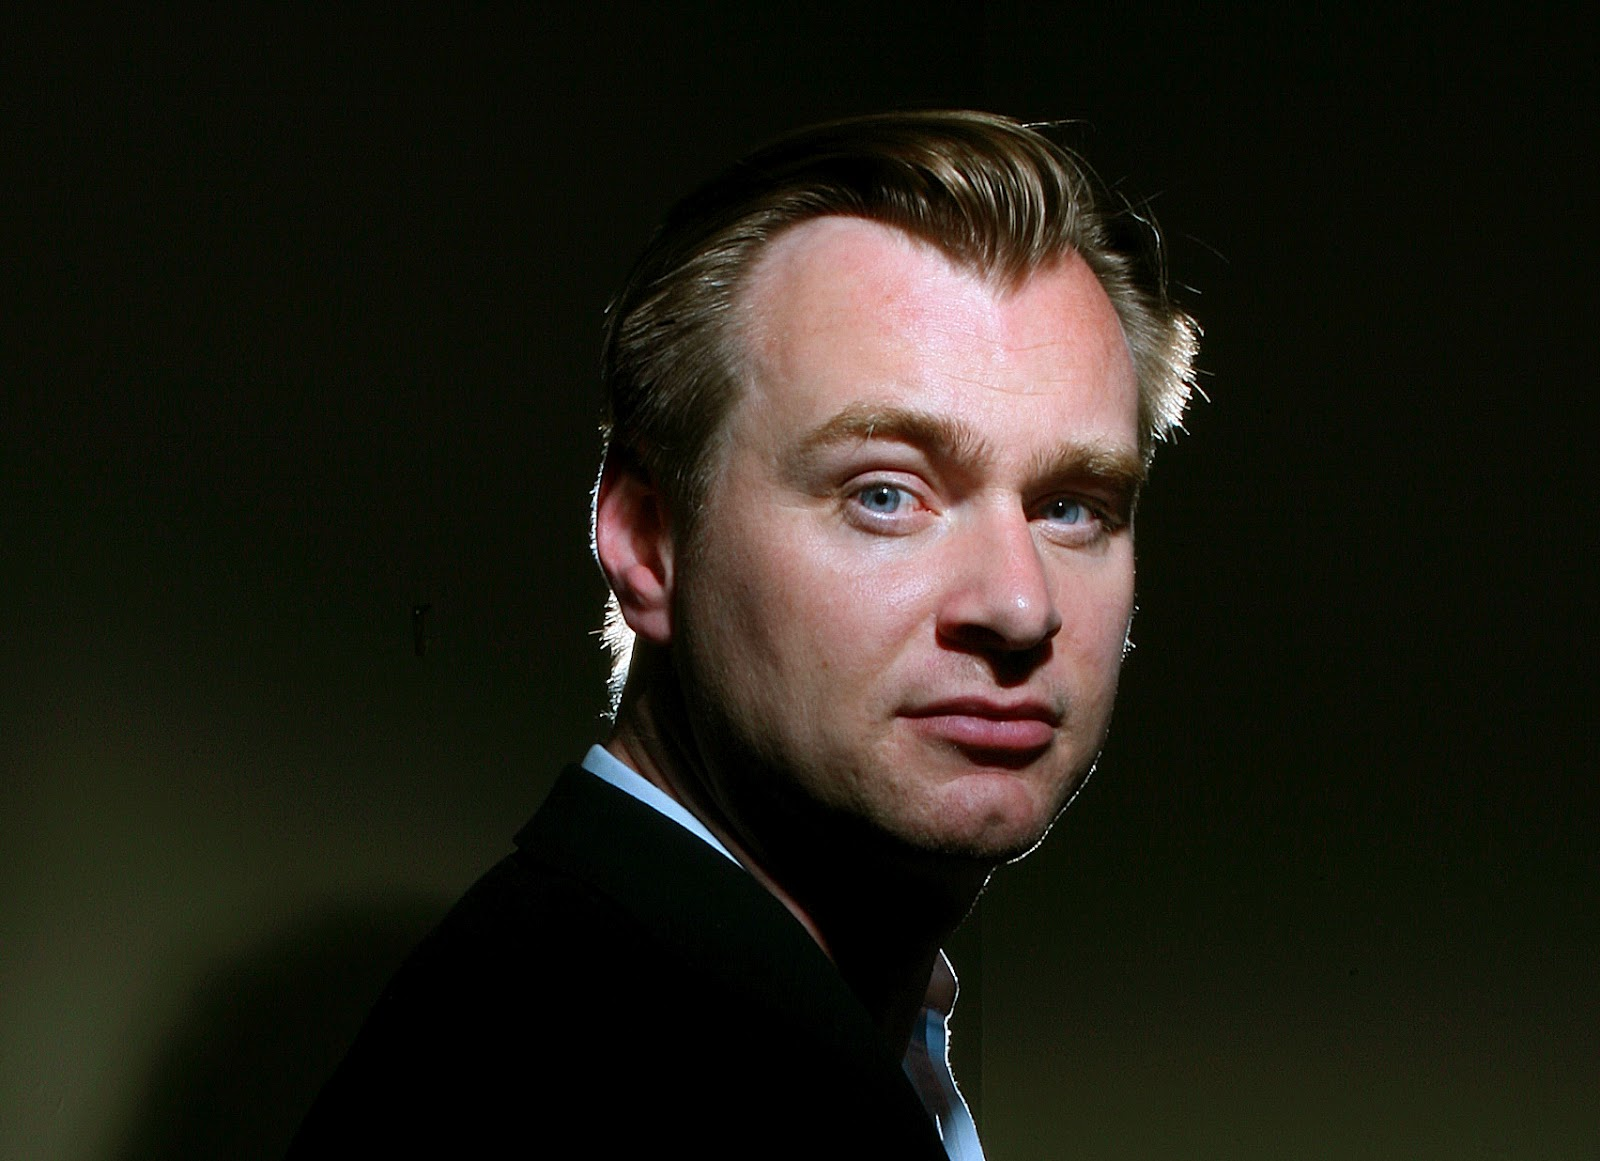 Christopher Nolan, Christopher, Nolan, The Great Man Tick, The Great Man